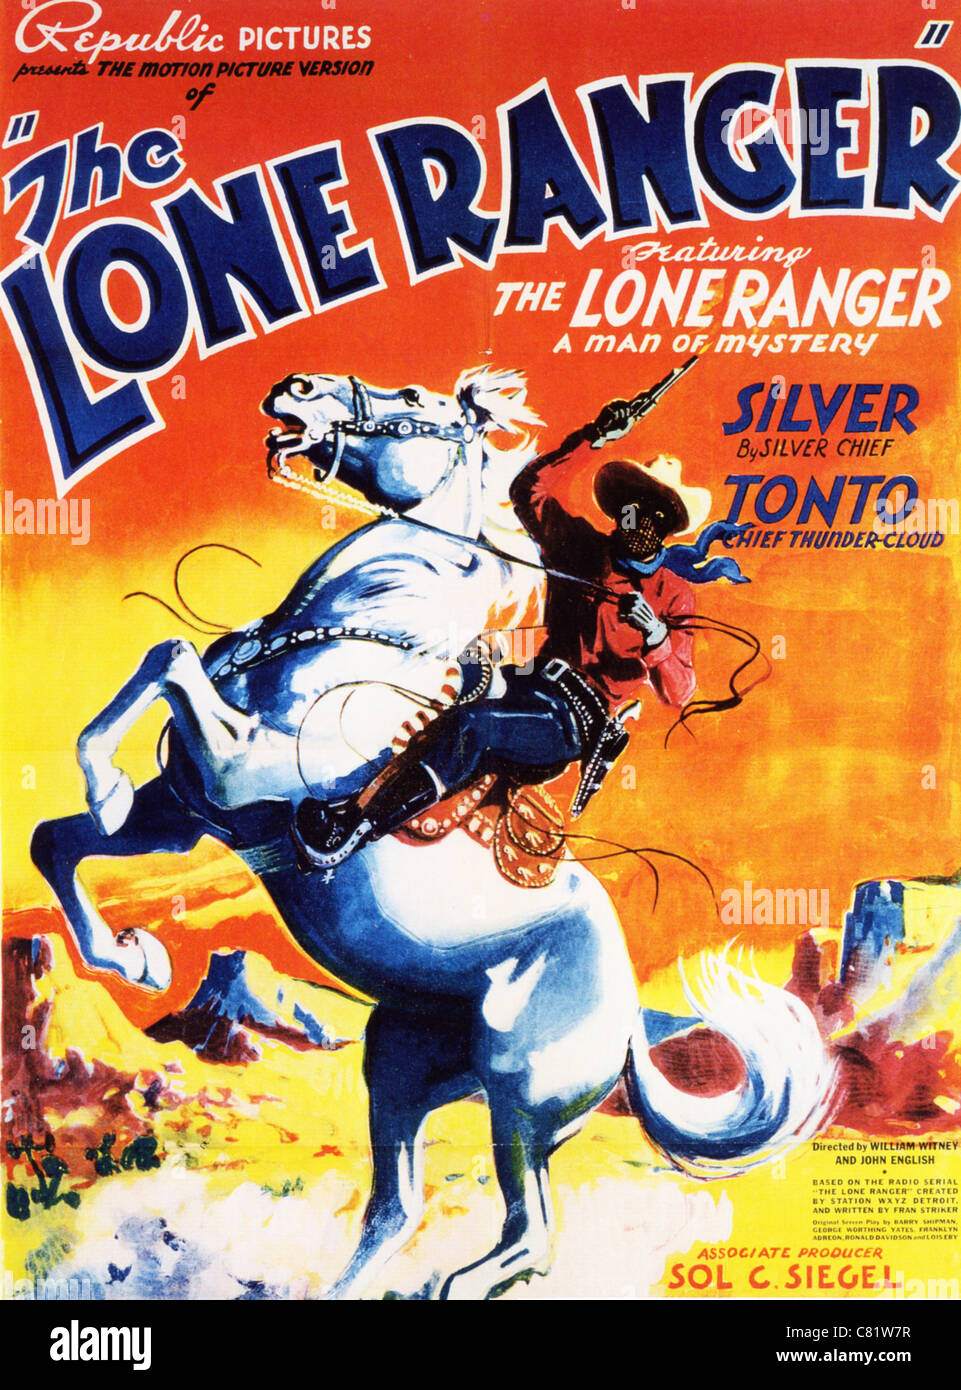 the lone ranger poster for 1938 republic pictures bw film